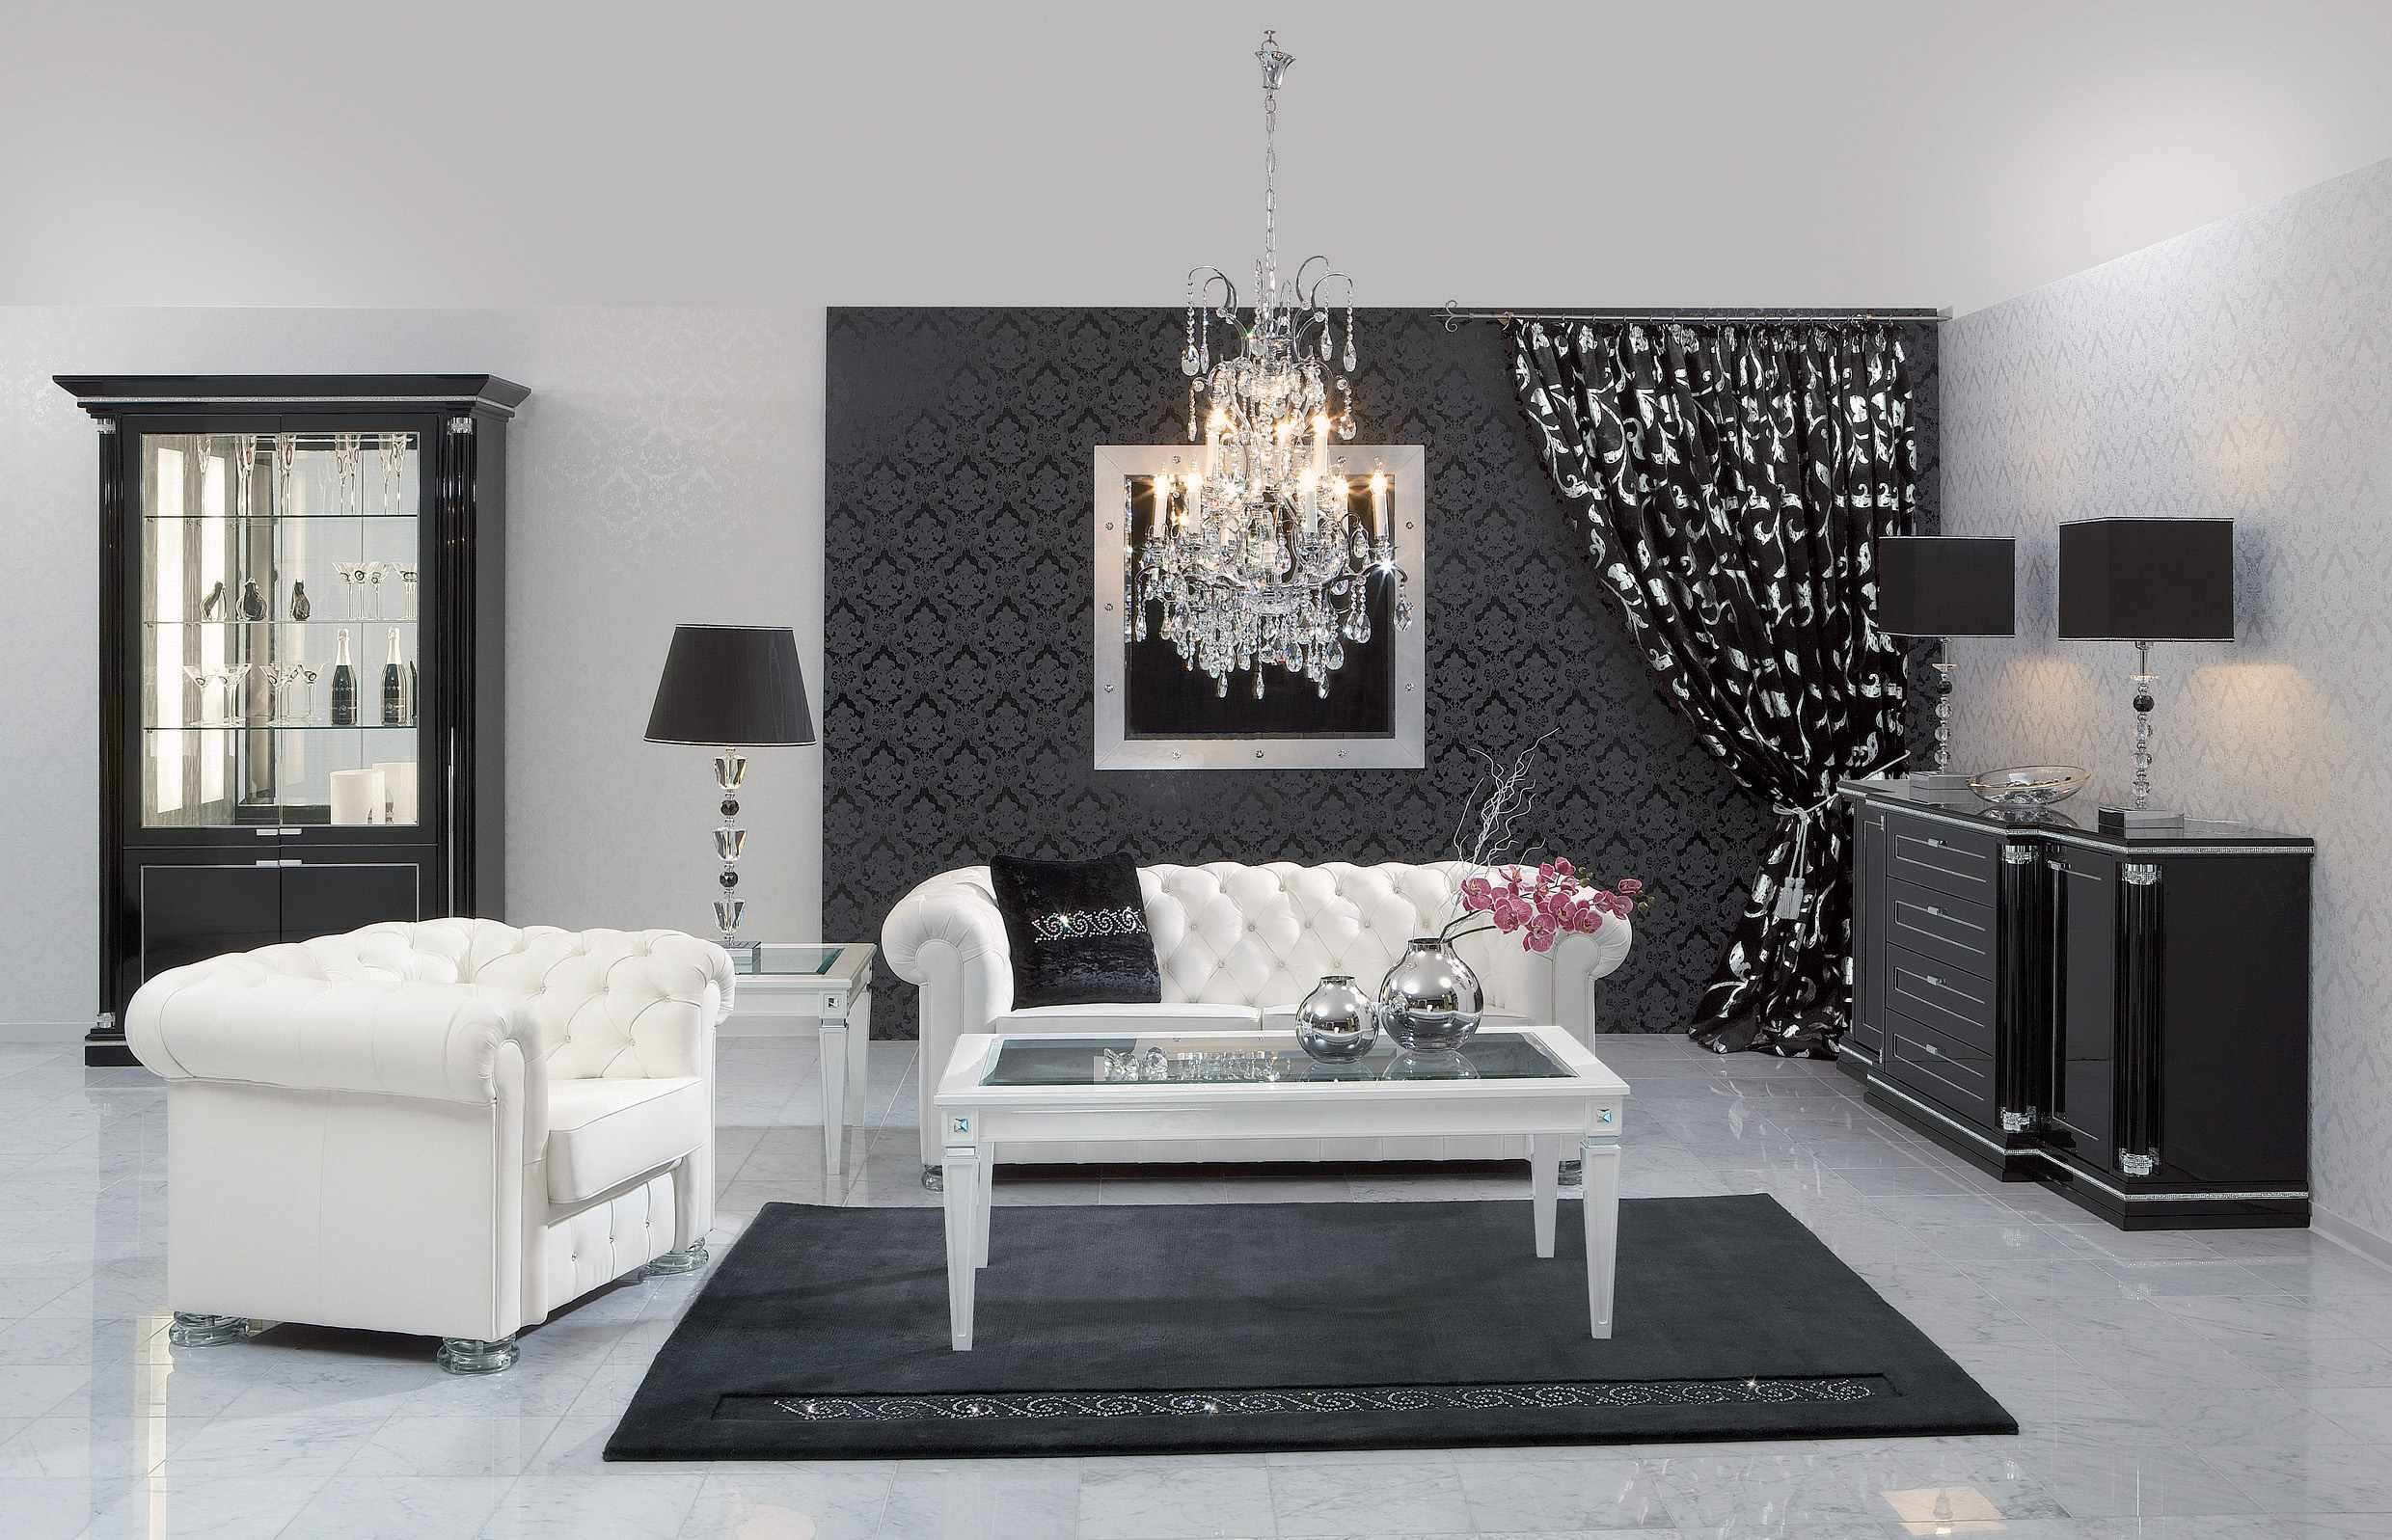 17 Inspiring Wonderful Black and White Contemporary Interior Designs Homesthetics 21